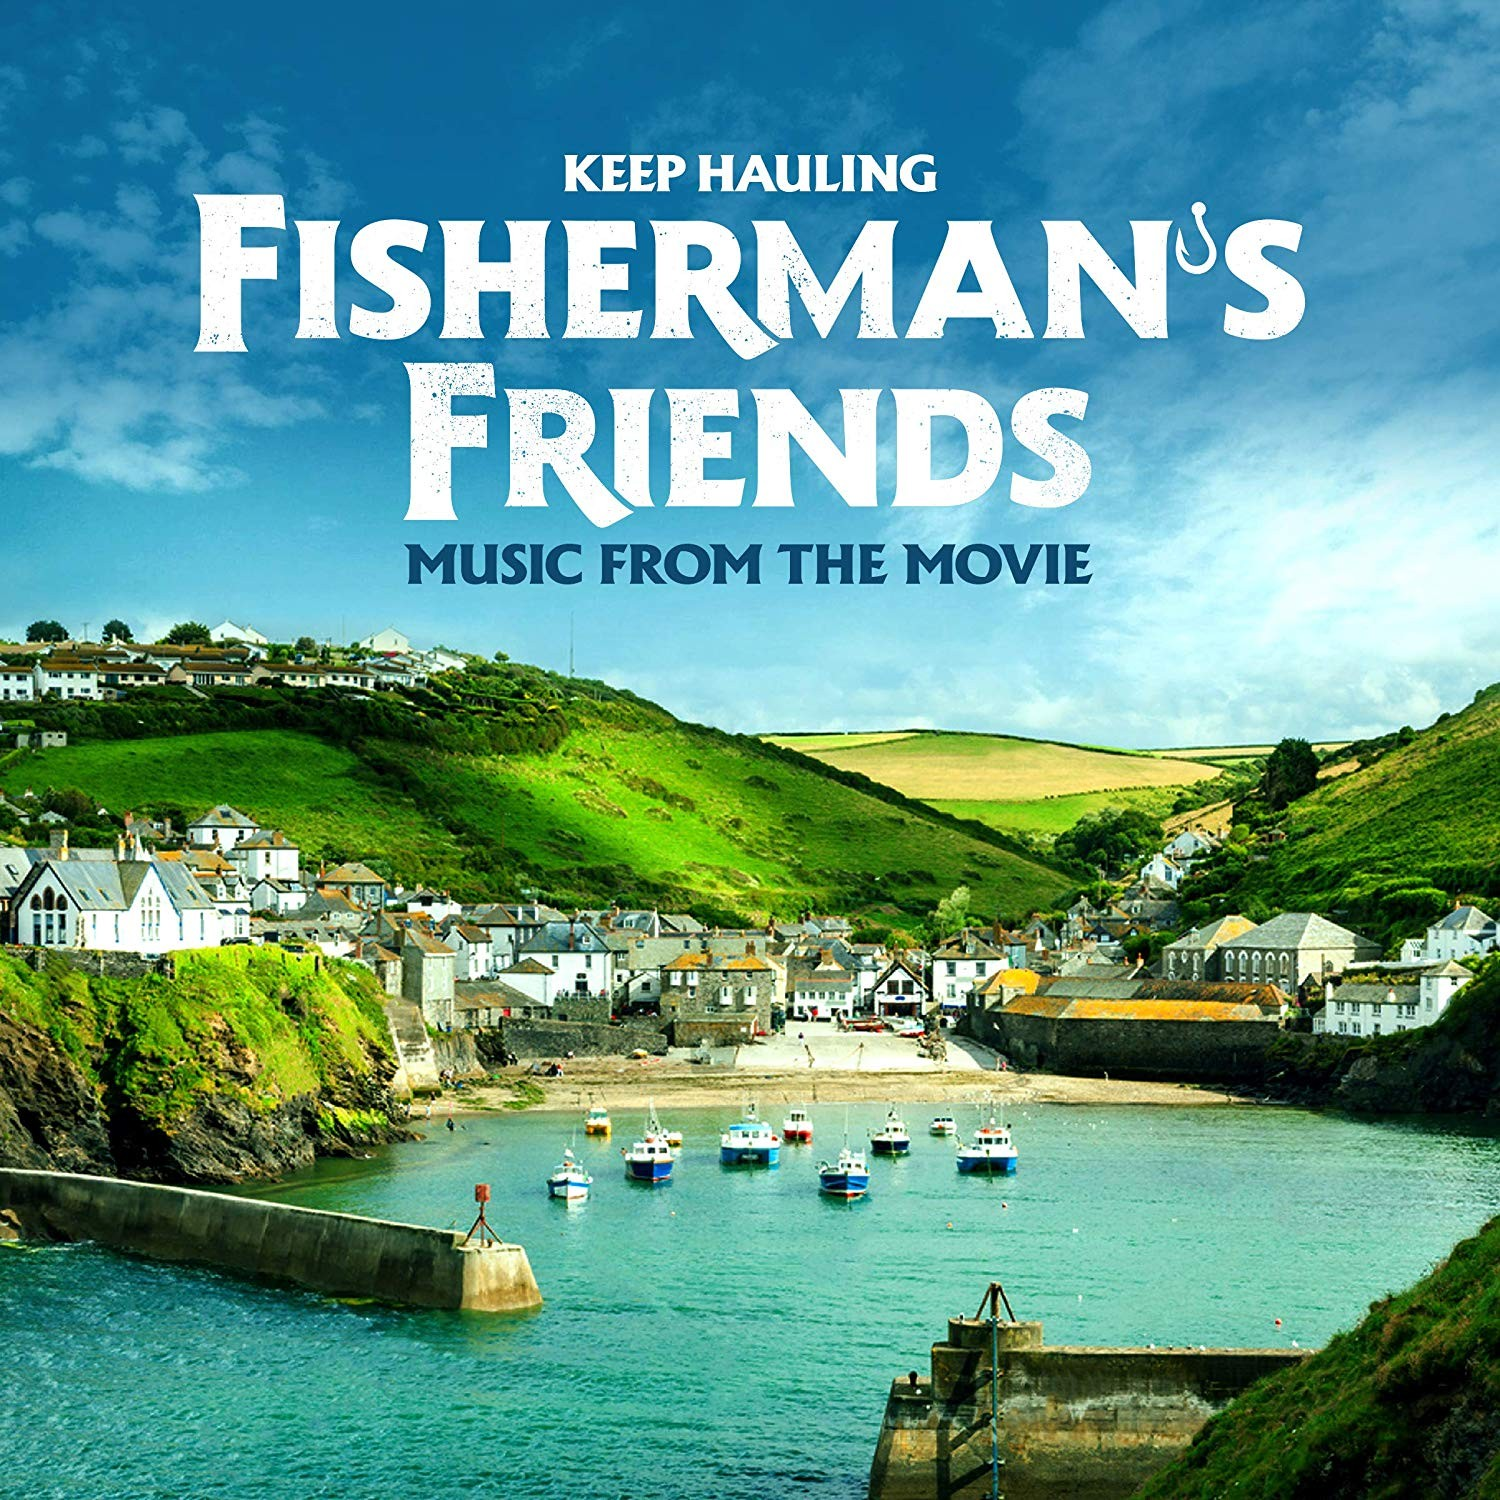 Film Music Site Fisherman S Friends Soundtrack Various Artists Island Records 2019 Keep Hauling Music From The Movie